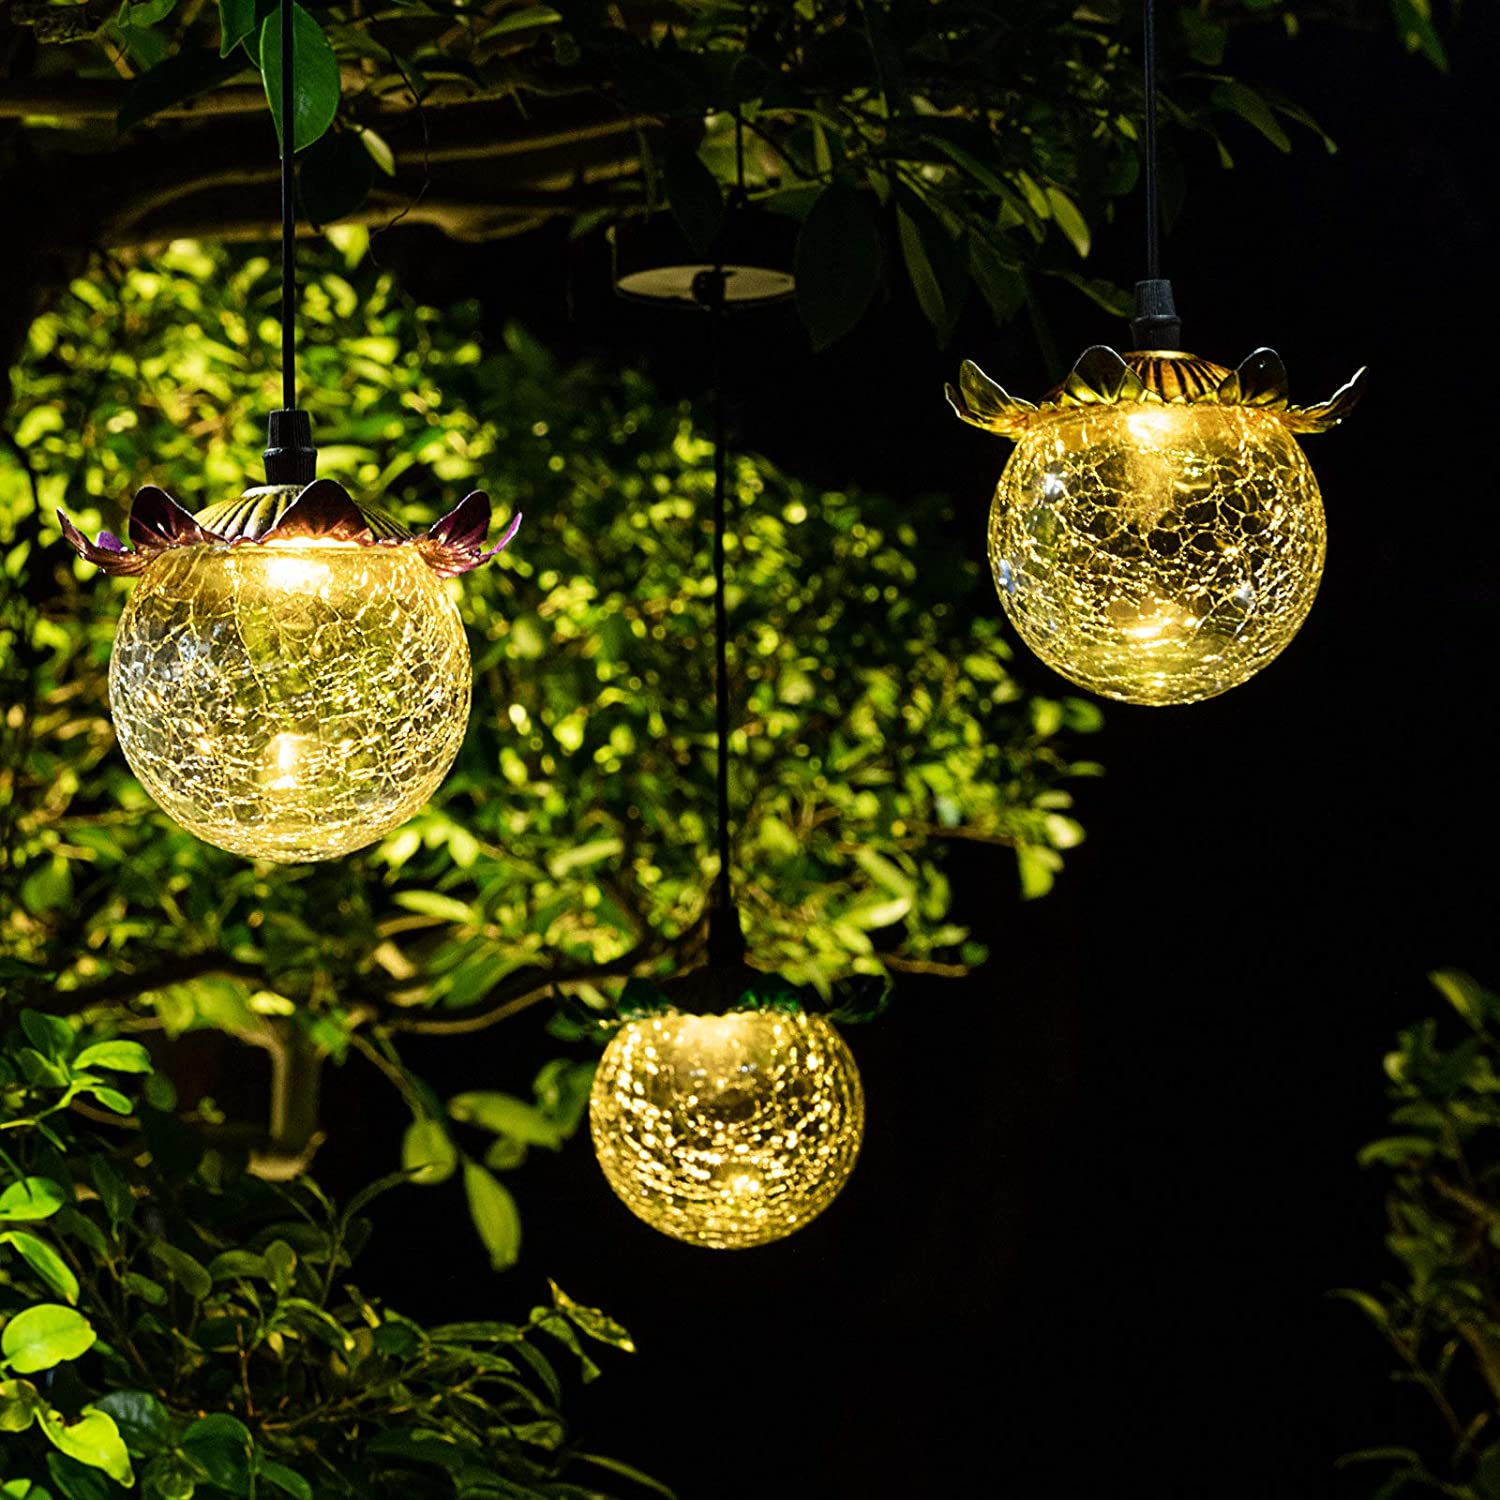 HUAXU Hanging Solar Lights LED Crackled Glass Ball Warm White Waterproof Outdoor Solar Powered Lanterns for Garden Yard Patio Lawn Porch Decoration(1 Globe)